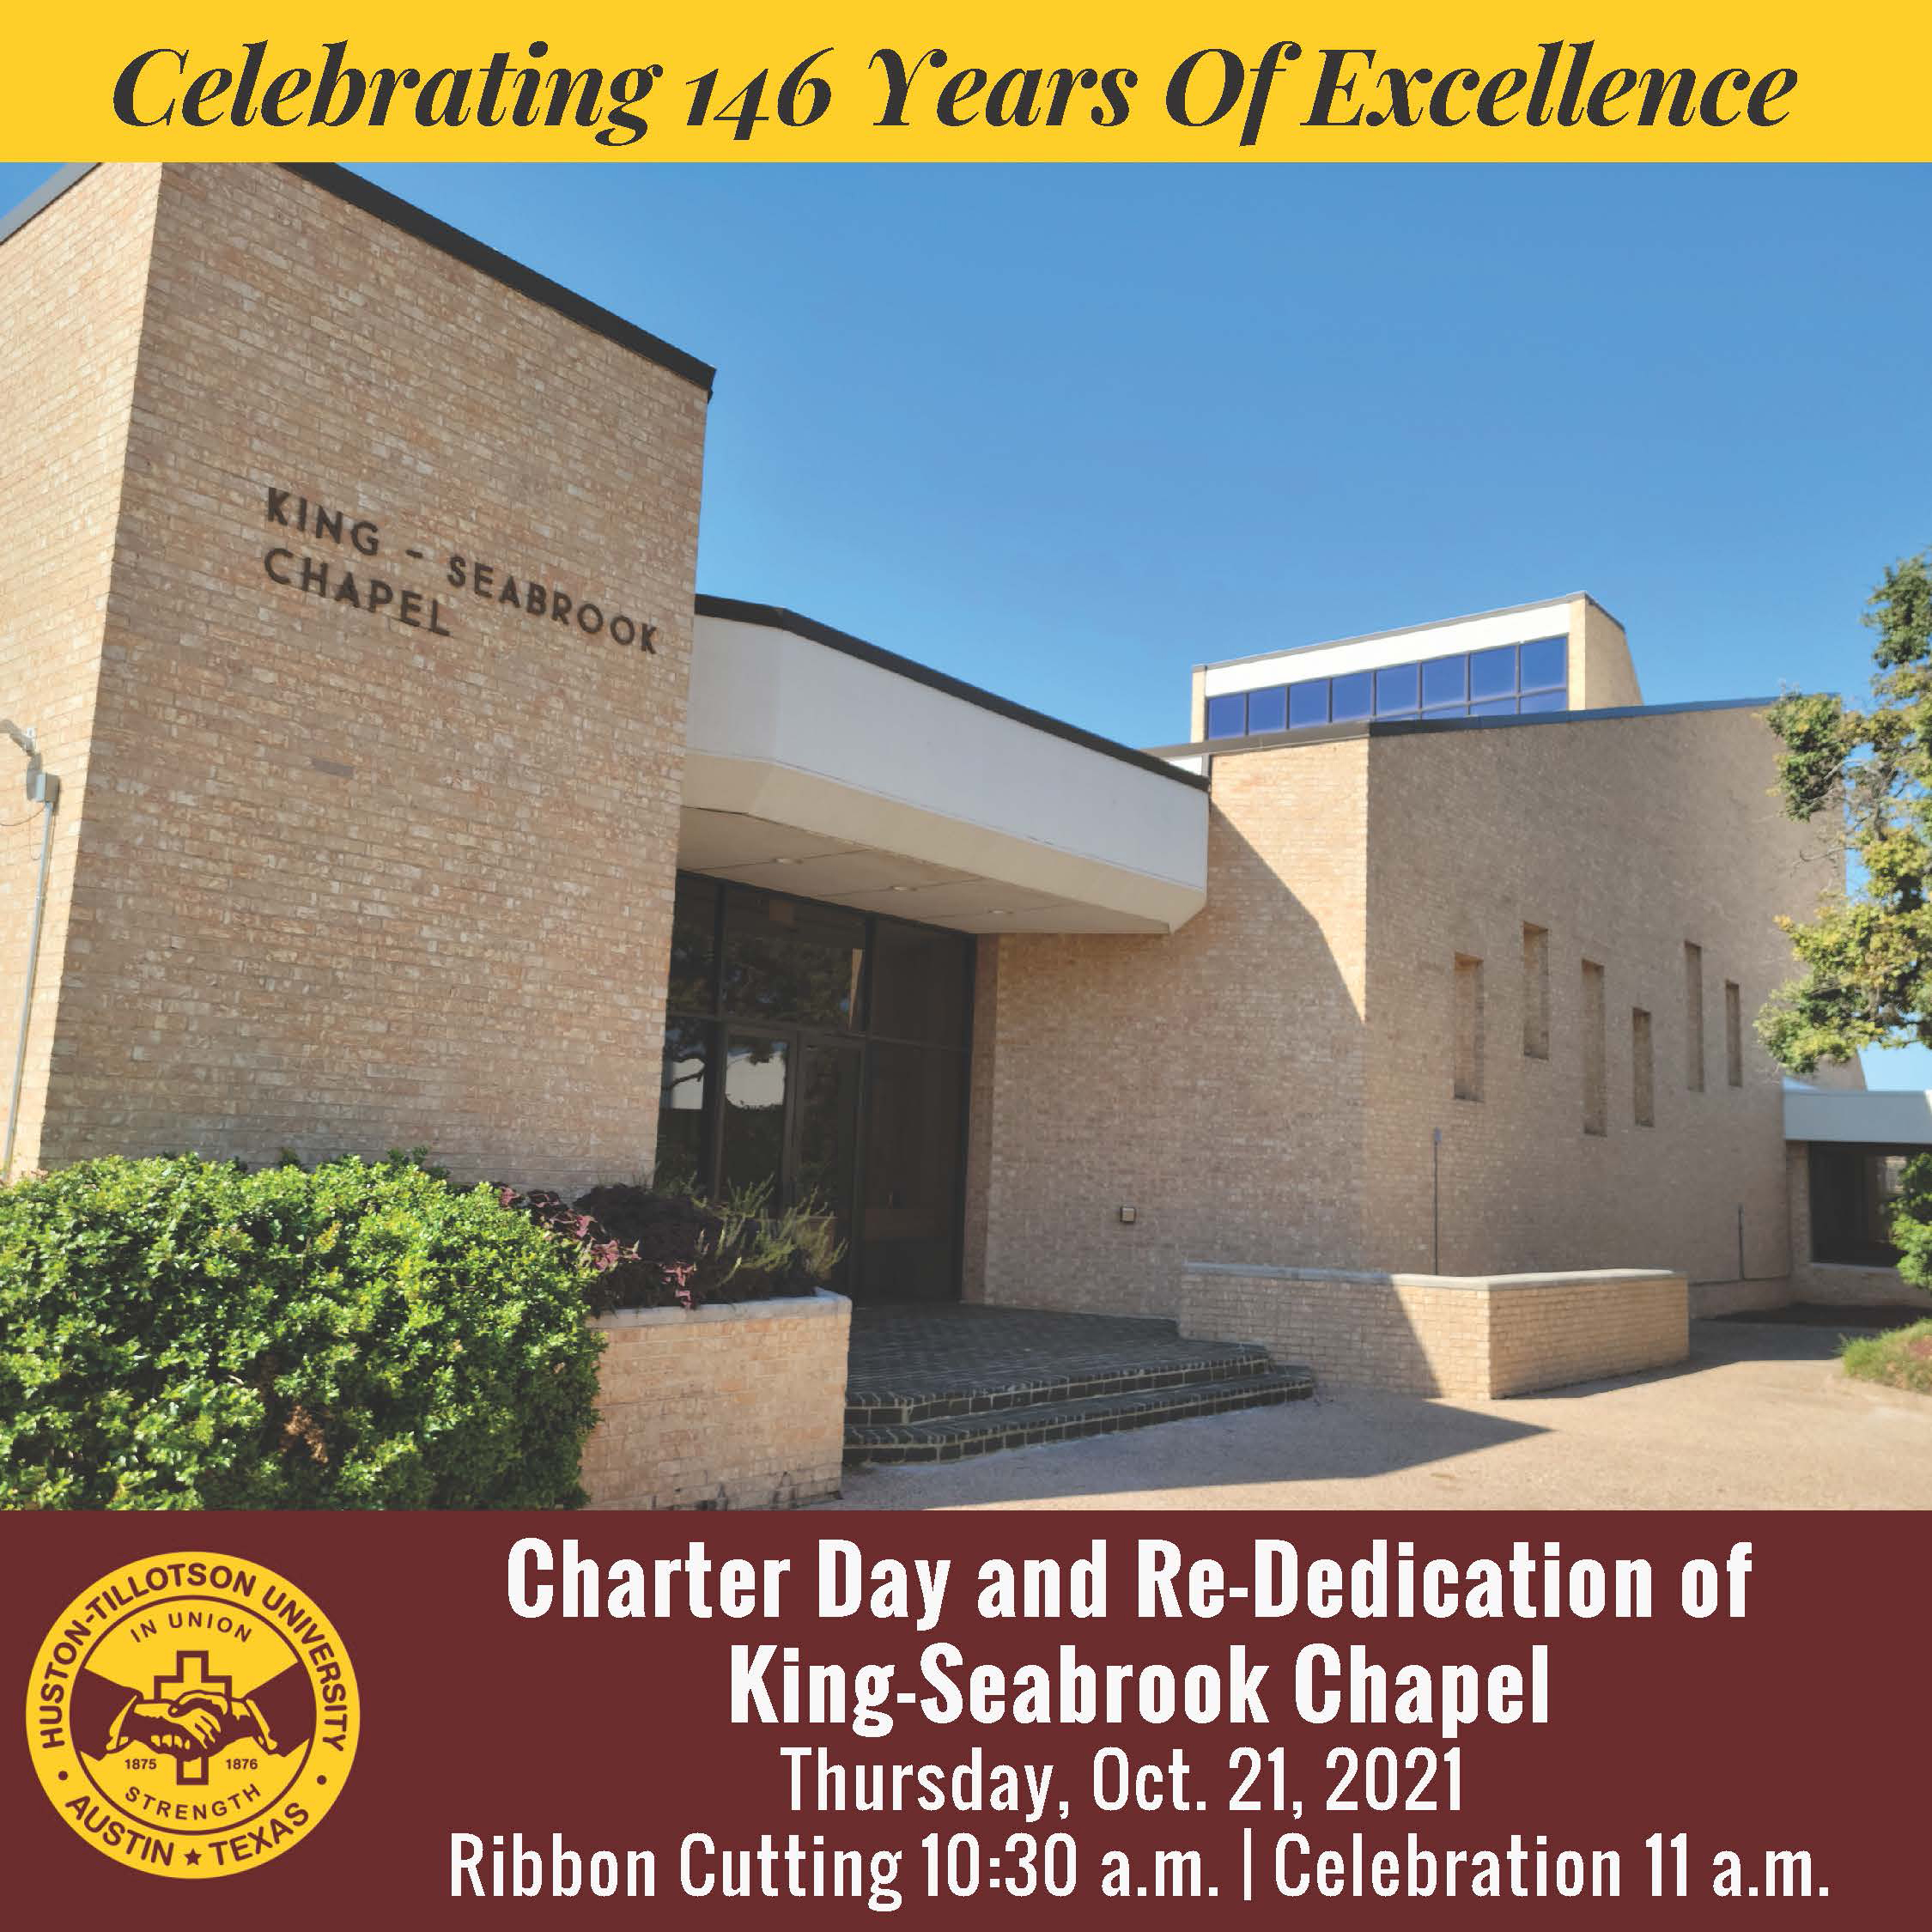 Charter Day Convocation and King-Seabrook Chapel Dedication